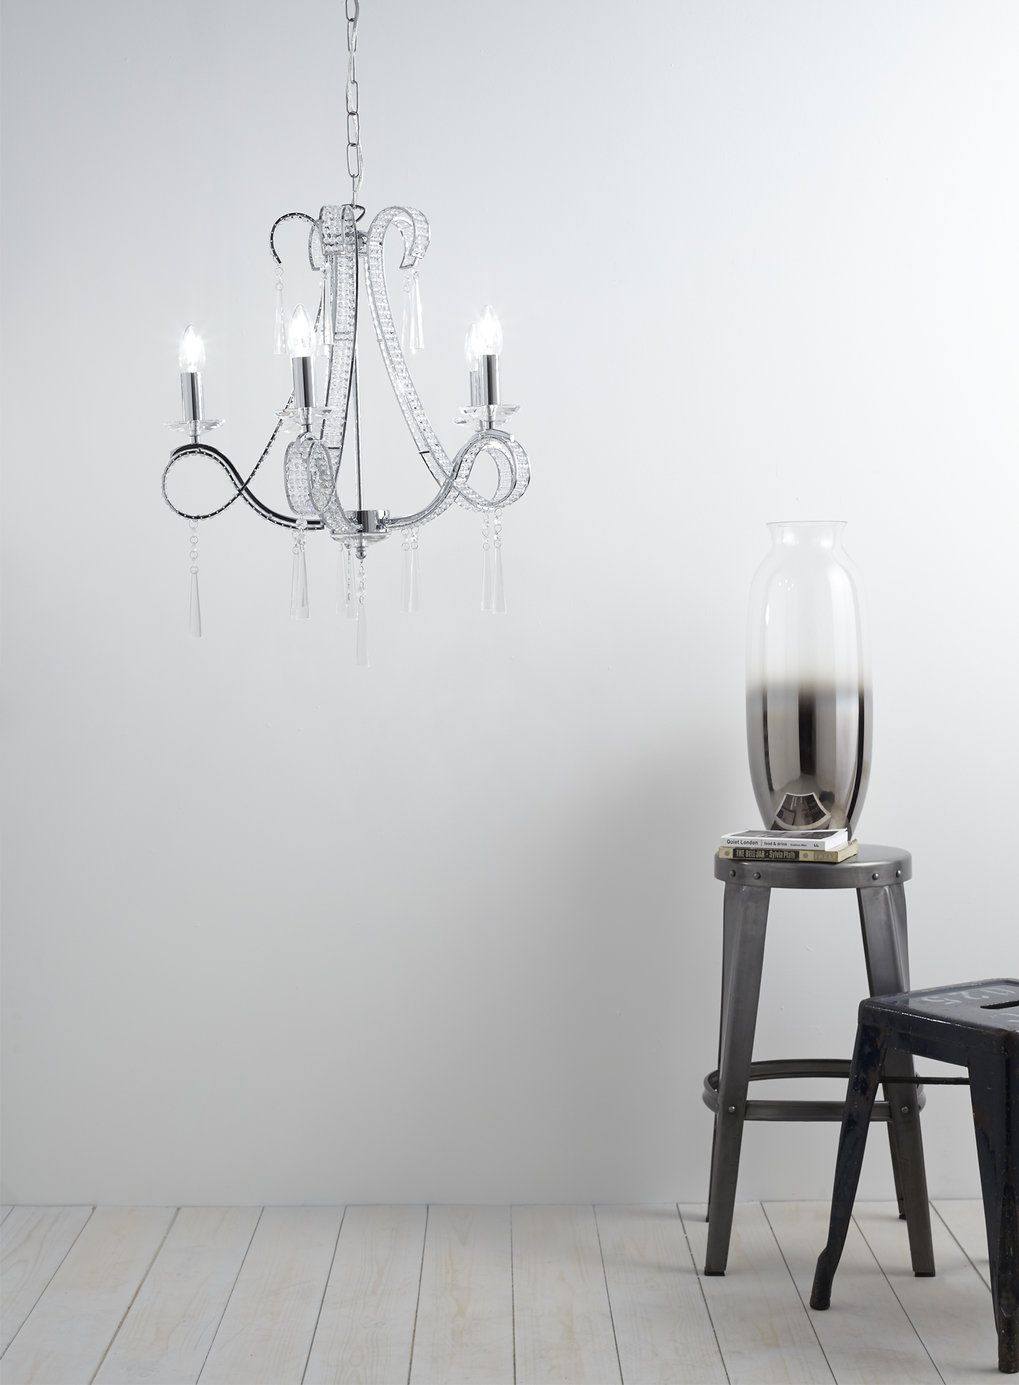 Trinity 5 light chandelier bhs home ideas pinterest bhs trinity 5 light chandelier bhs arubaitofo Image collections